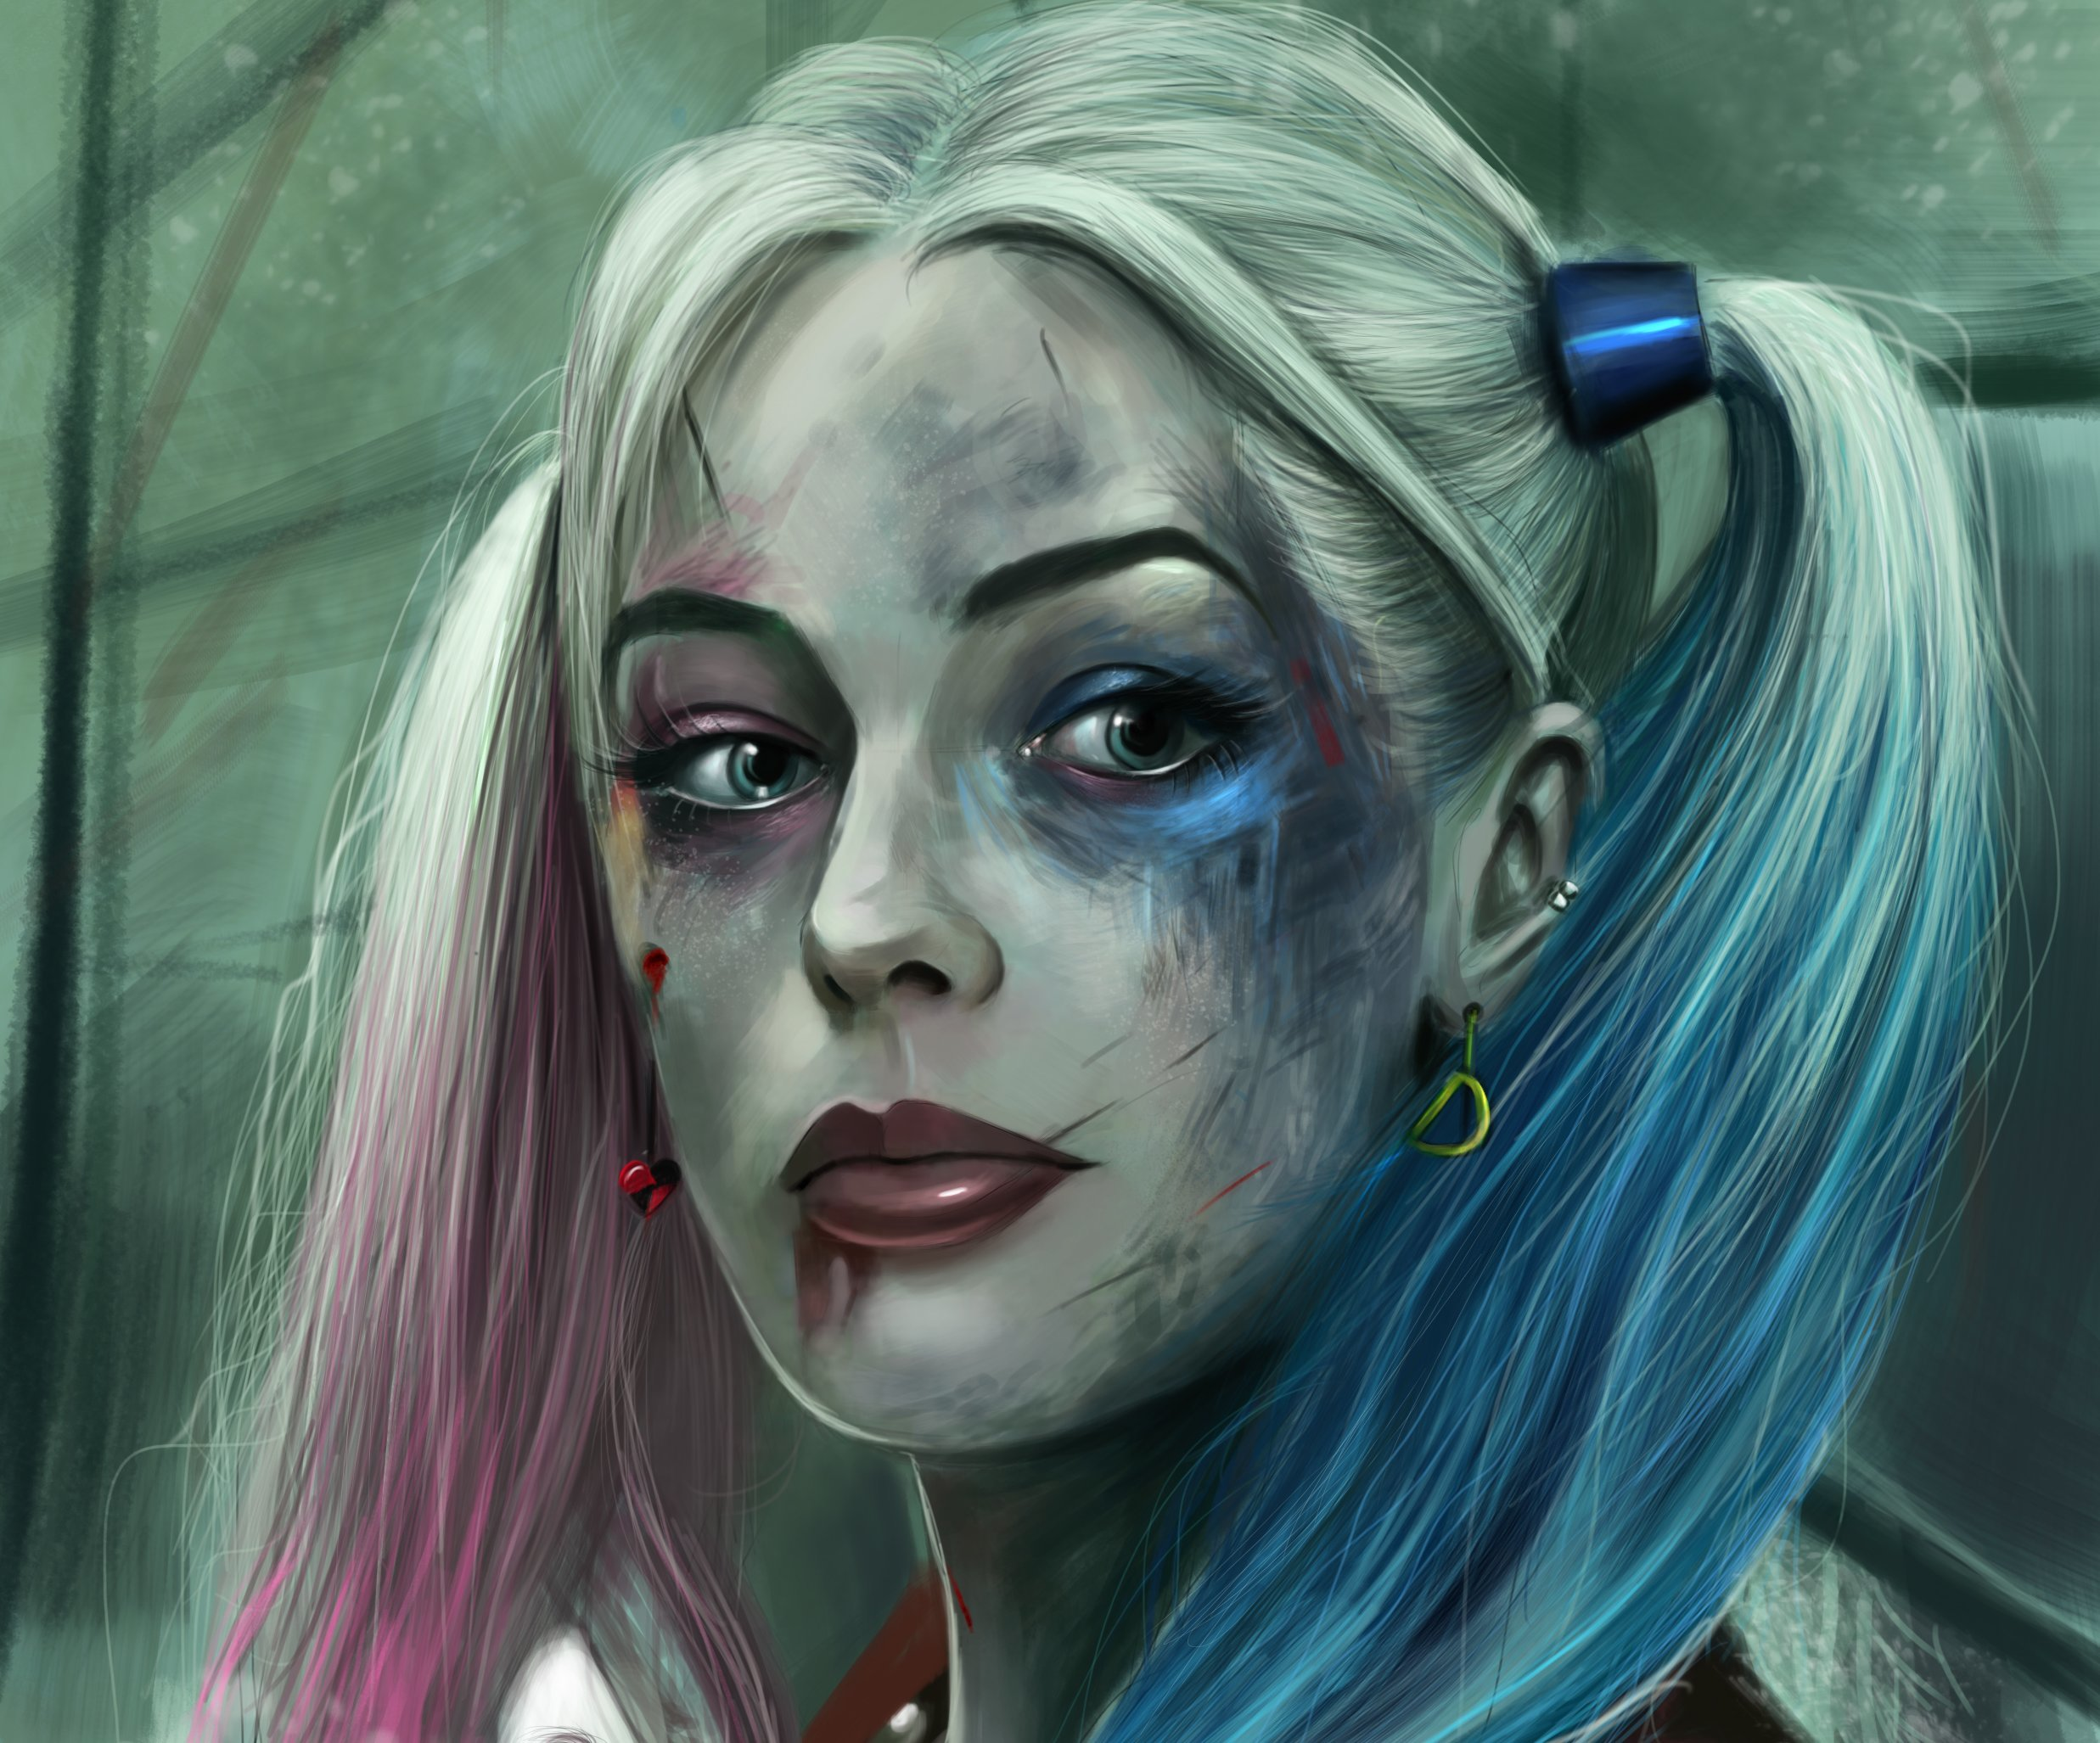 434 Harley Quinn Hd Wallpapers Background Images Wallpaper Abyss